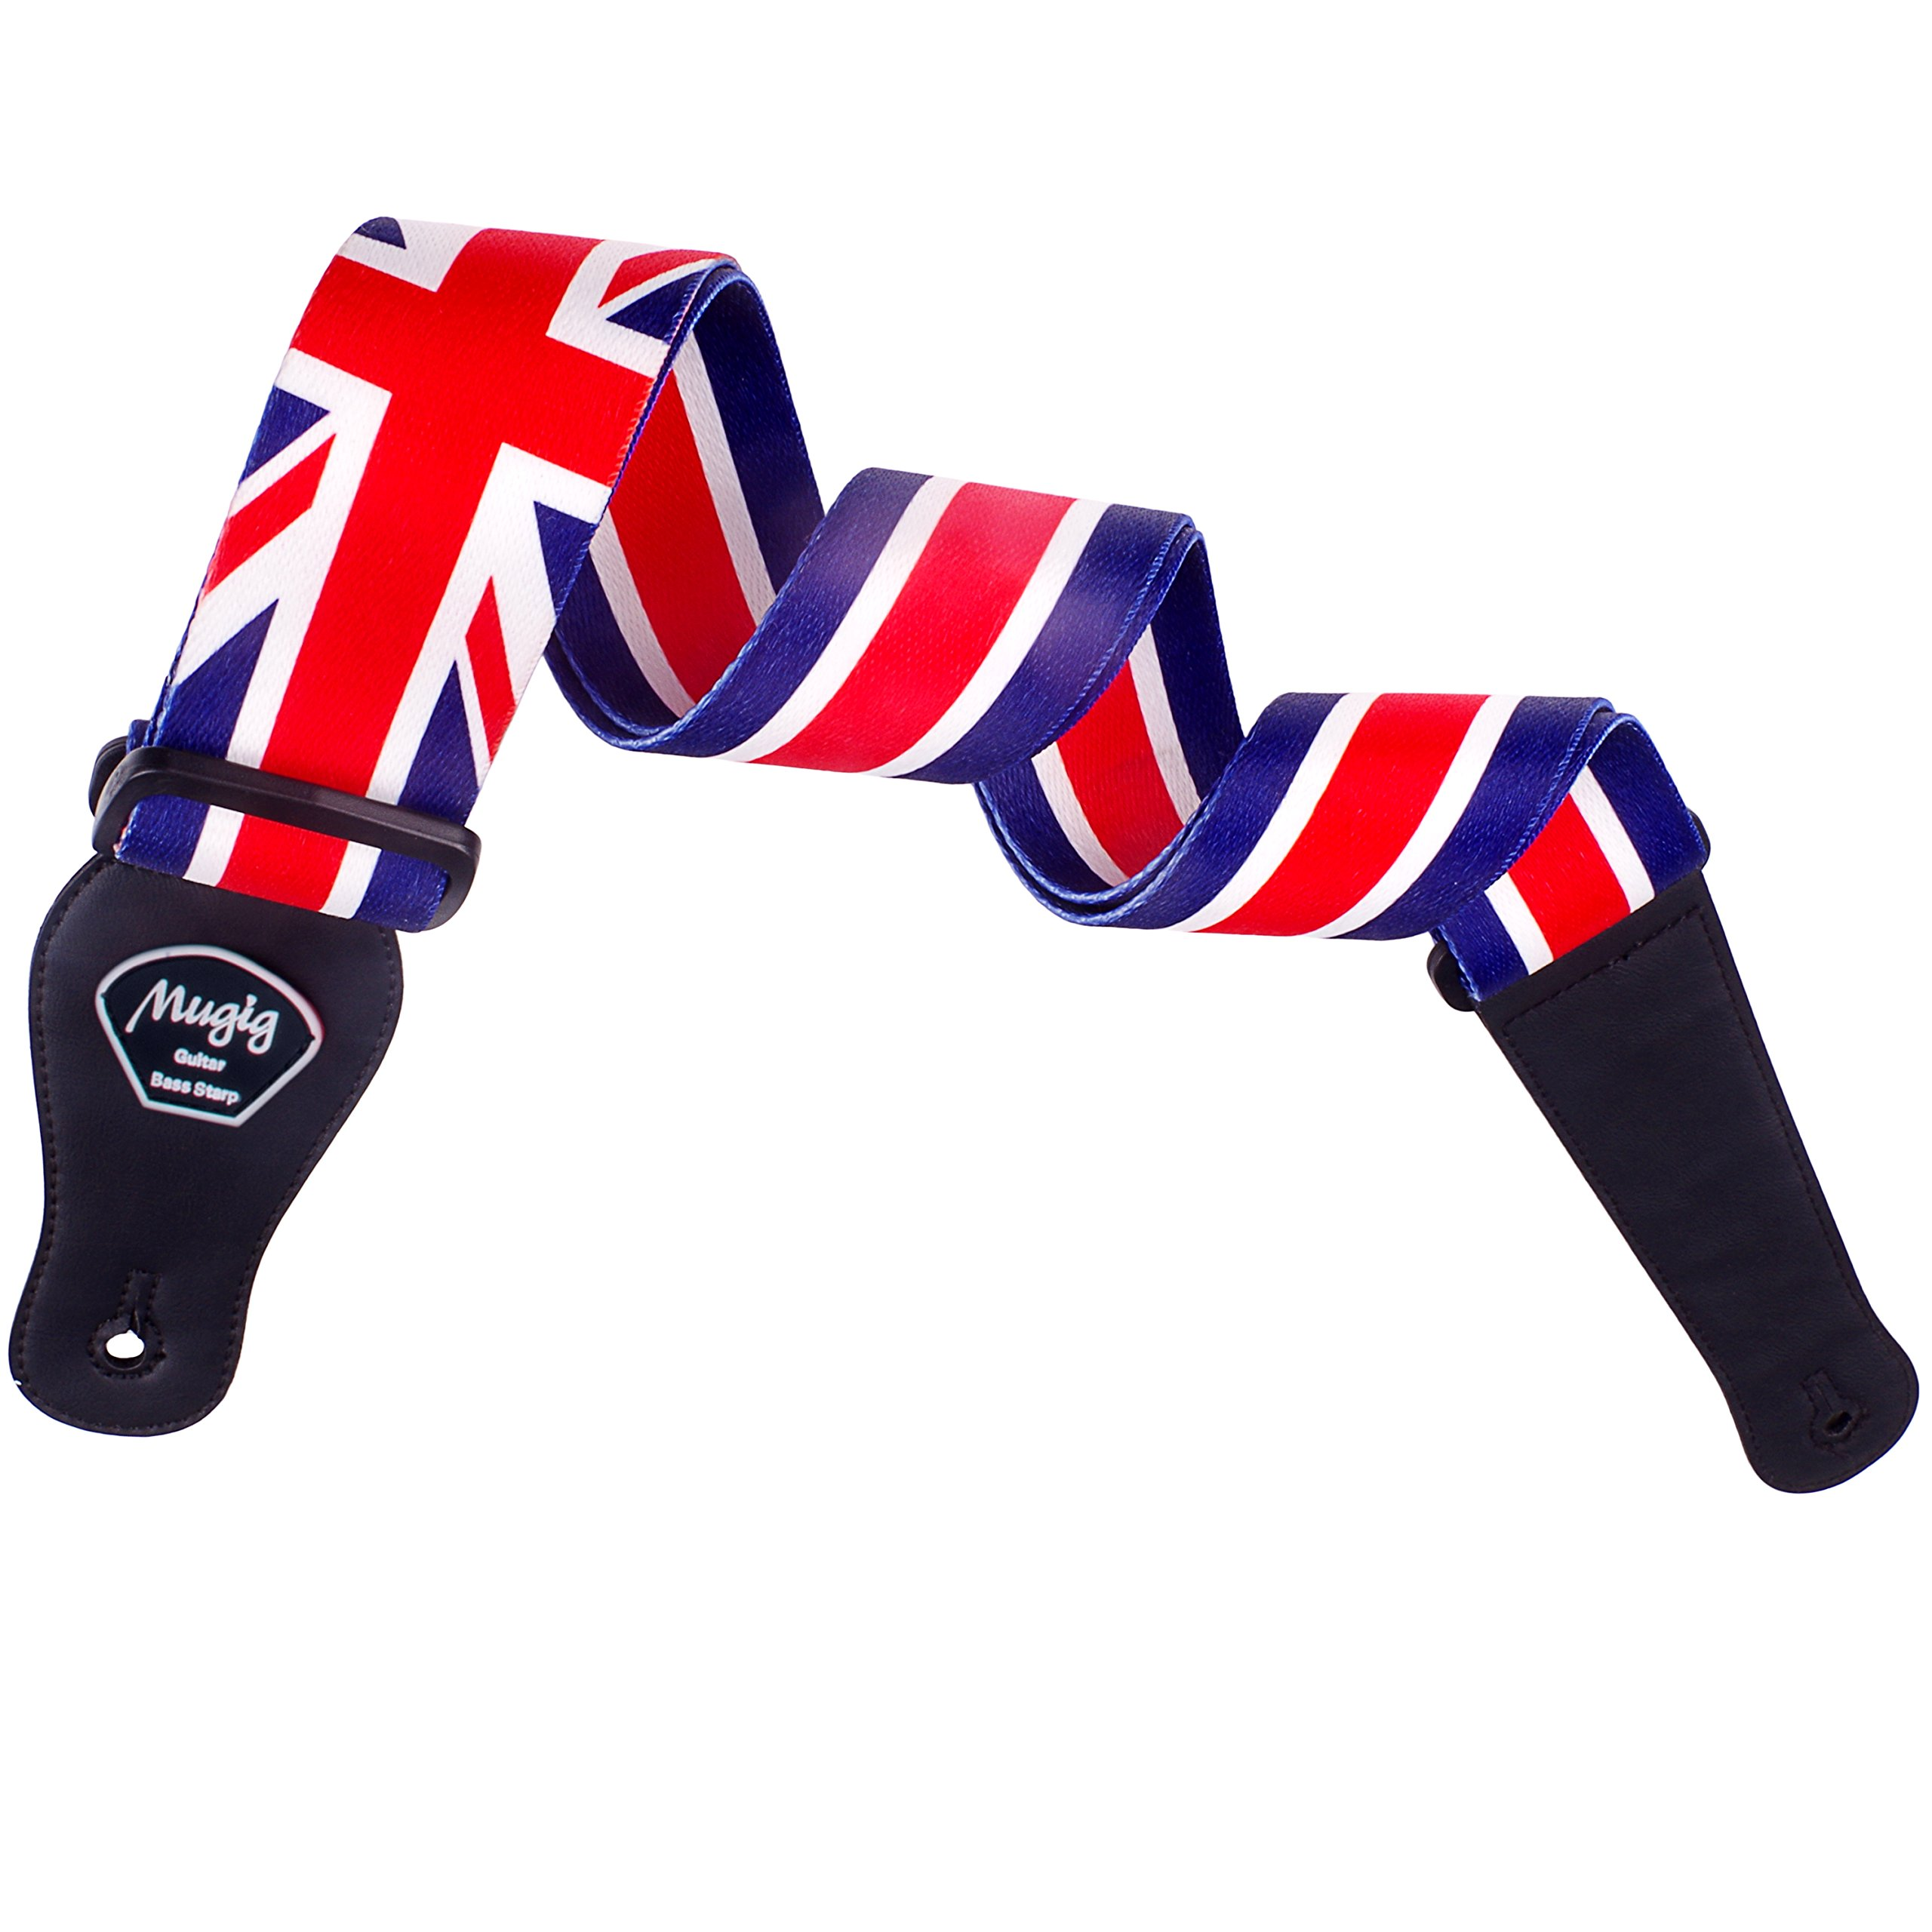 Mugig Guitar Strap, Adjustable Soft Cotton Strap, Union Jack Guitar & Bass Strap National Flag Design,5cm Width with Pick Pocket (UK)